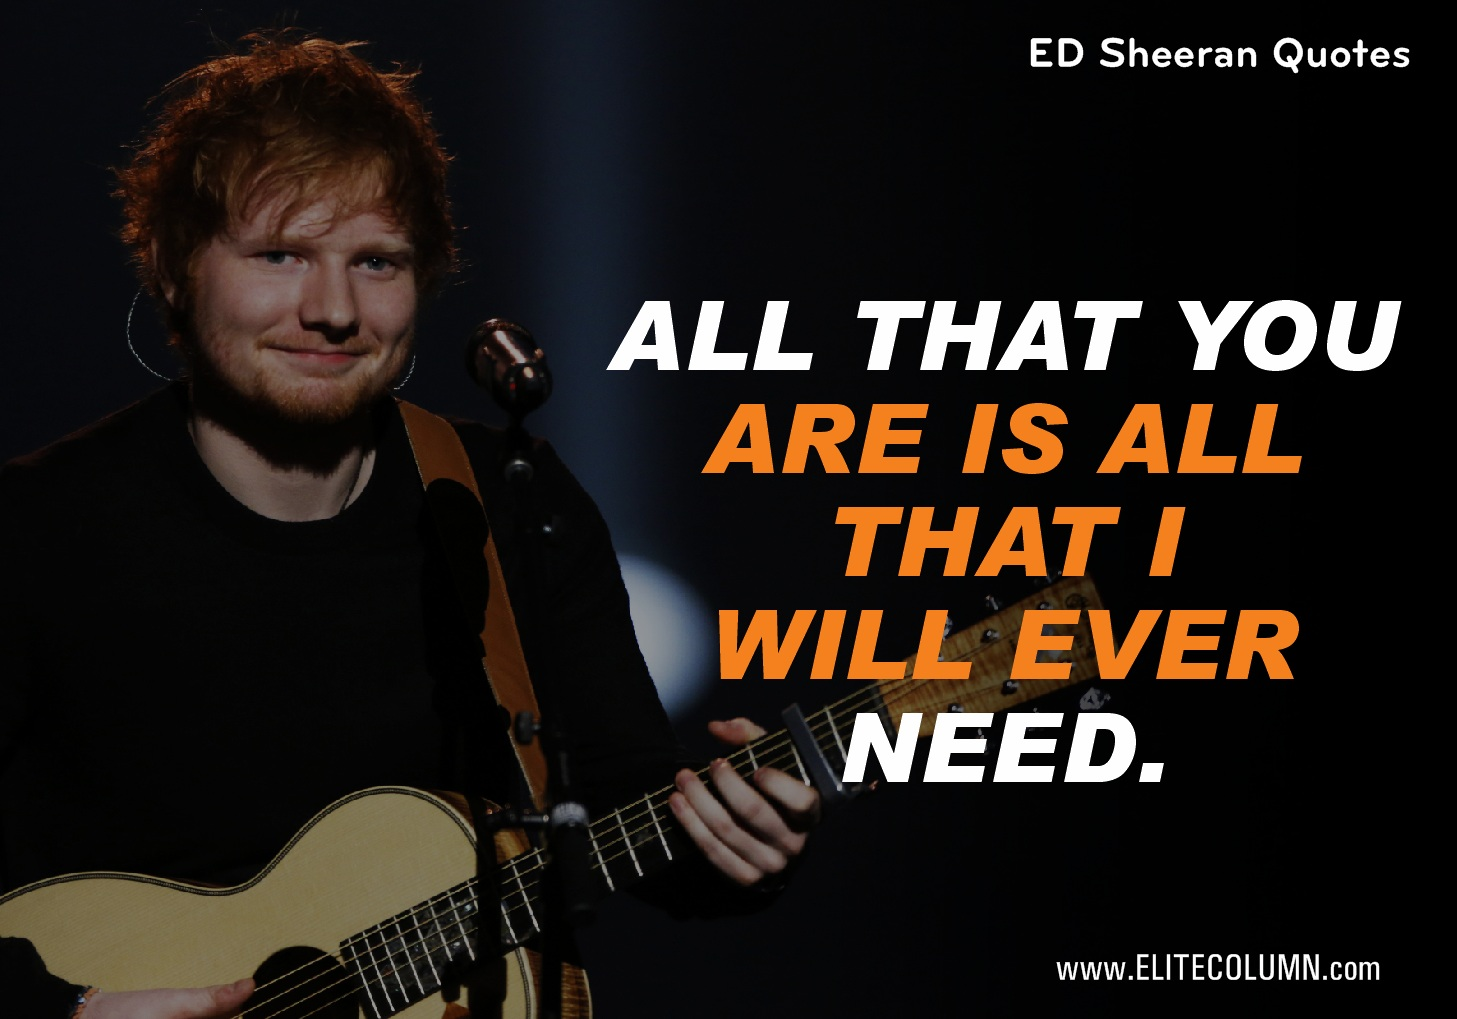 Ed Sheeran Quotes (8)